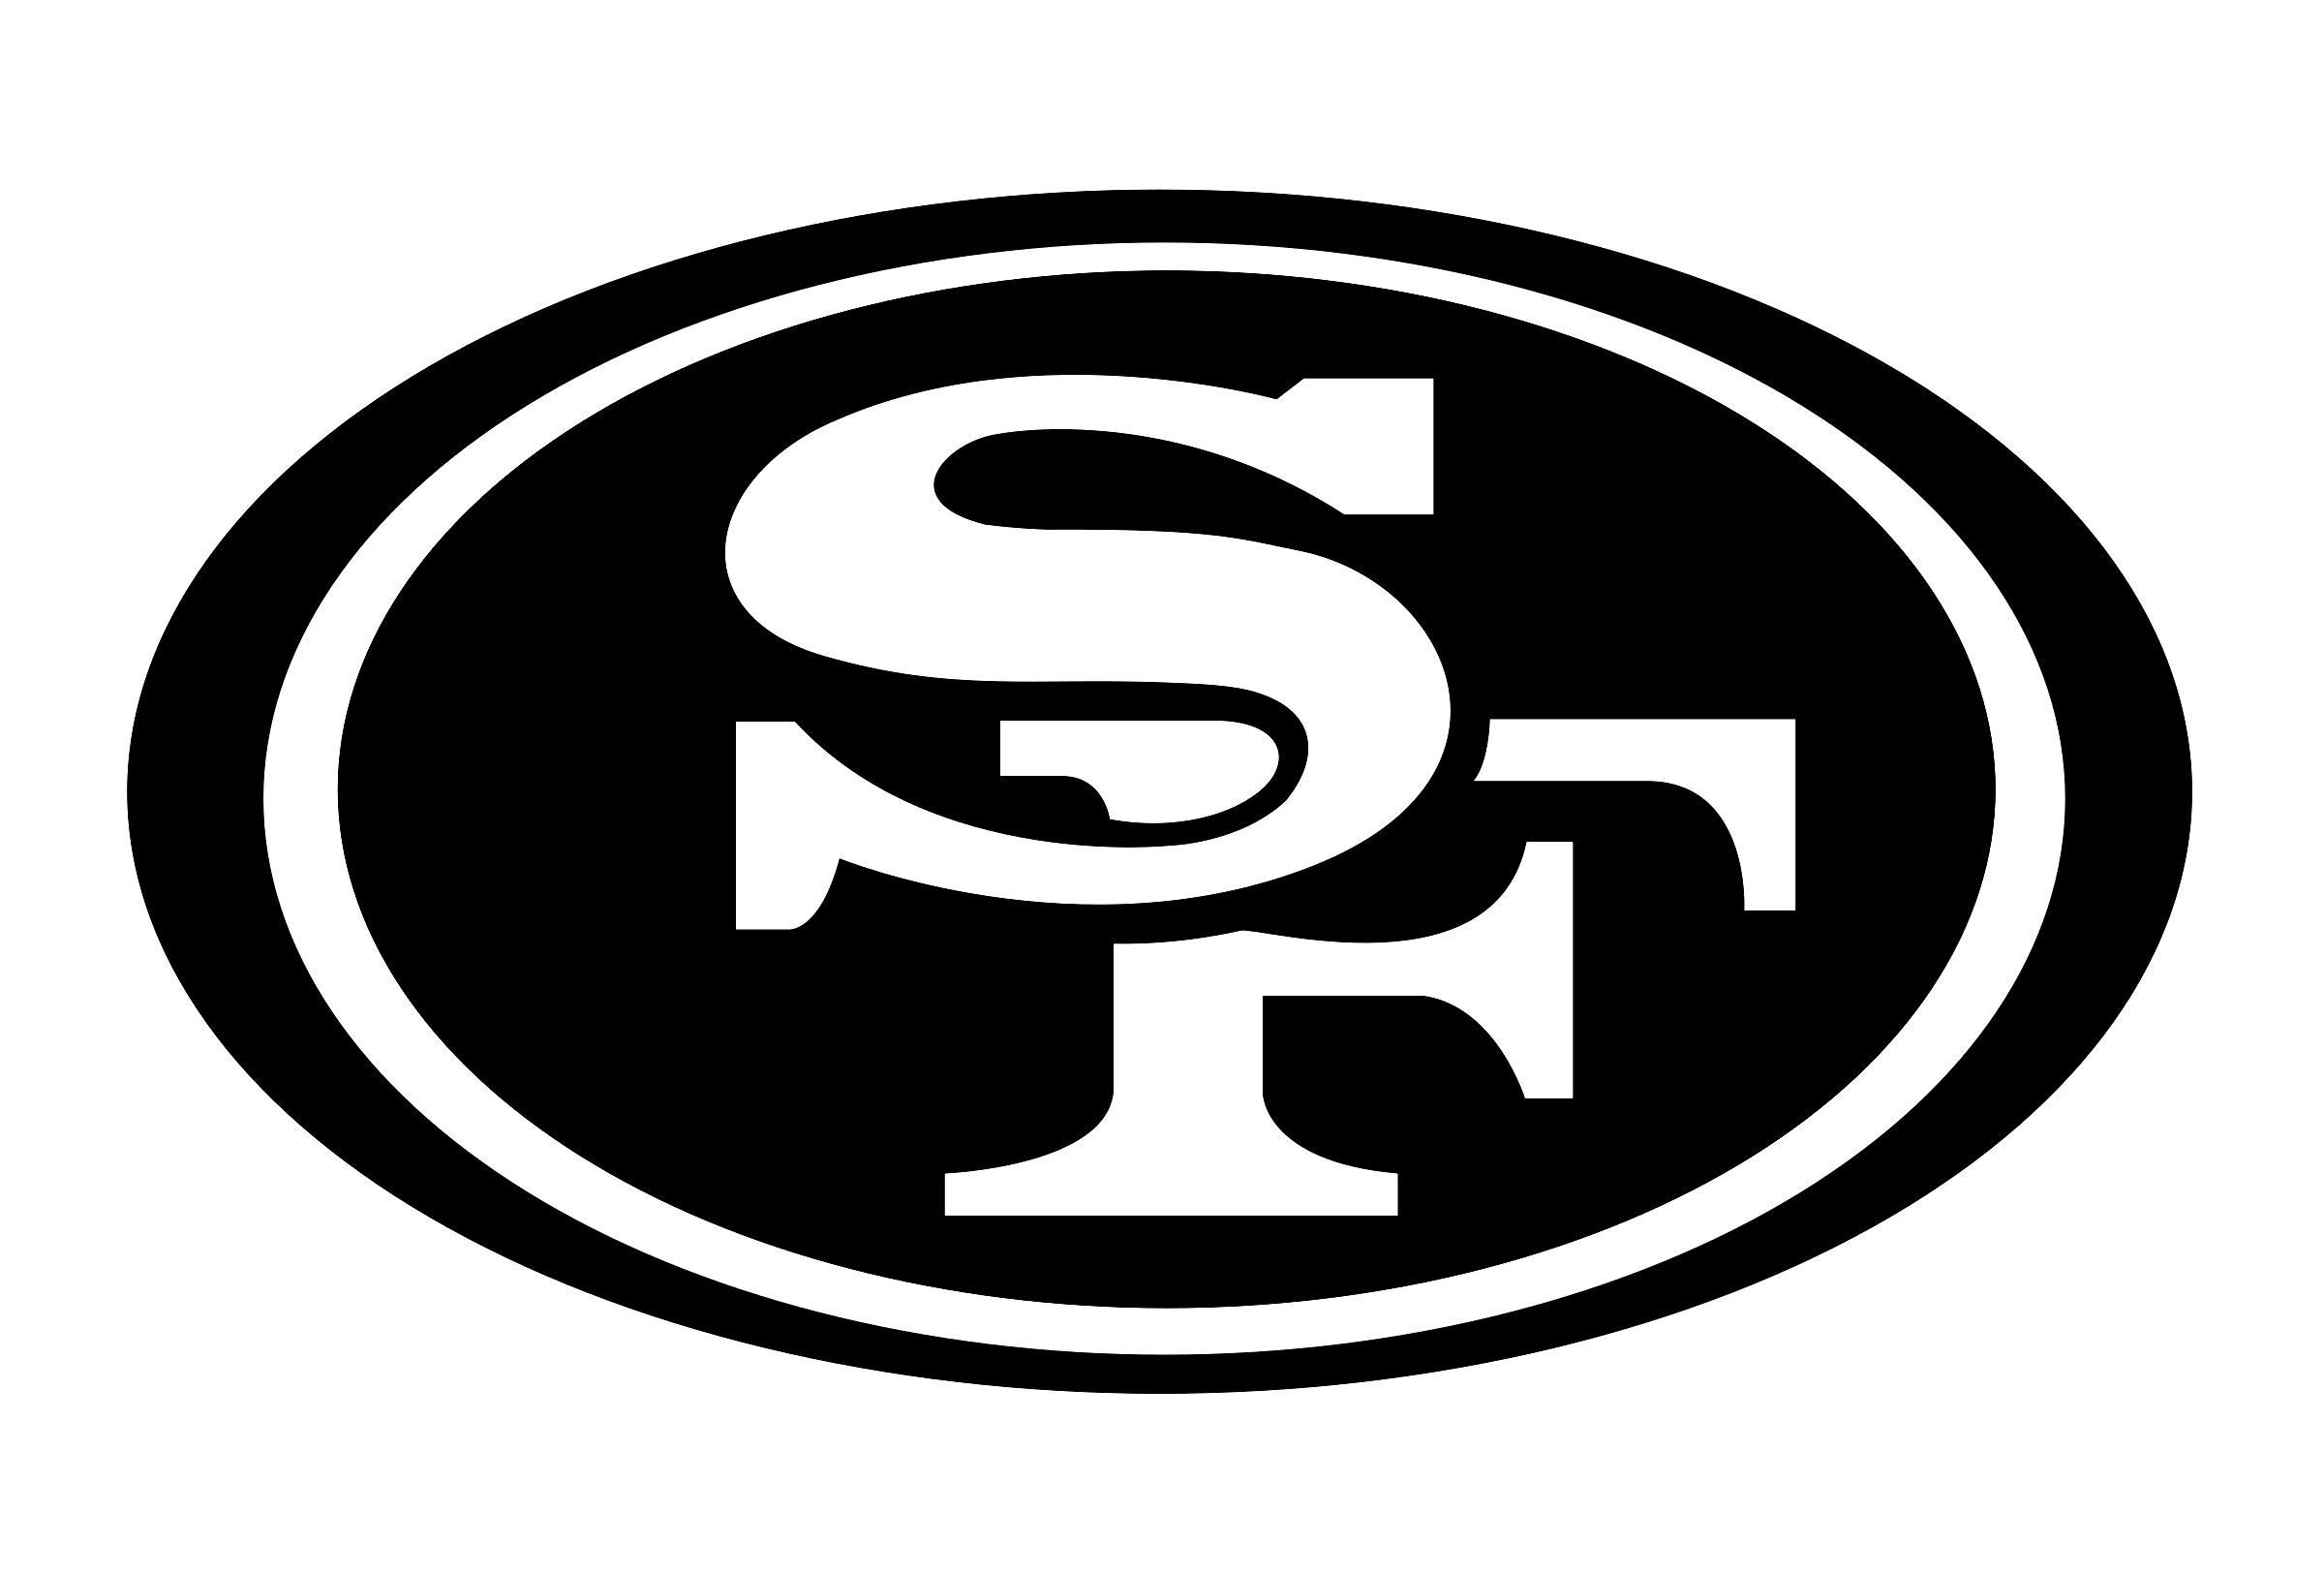 49ers drawing design. San francisco ers logo